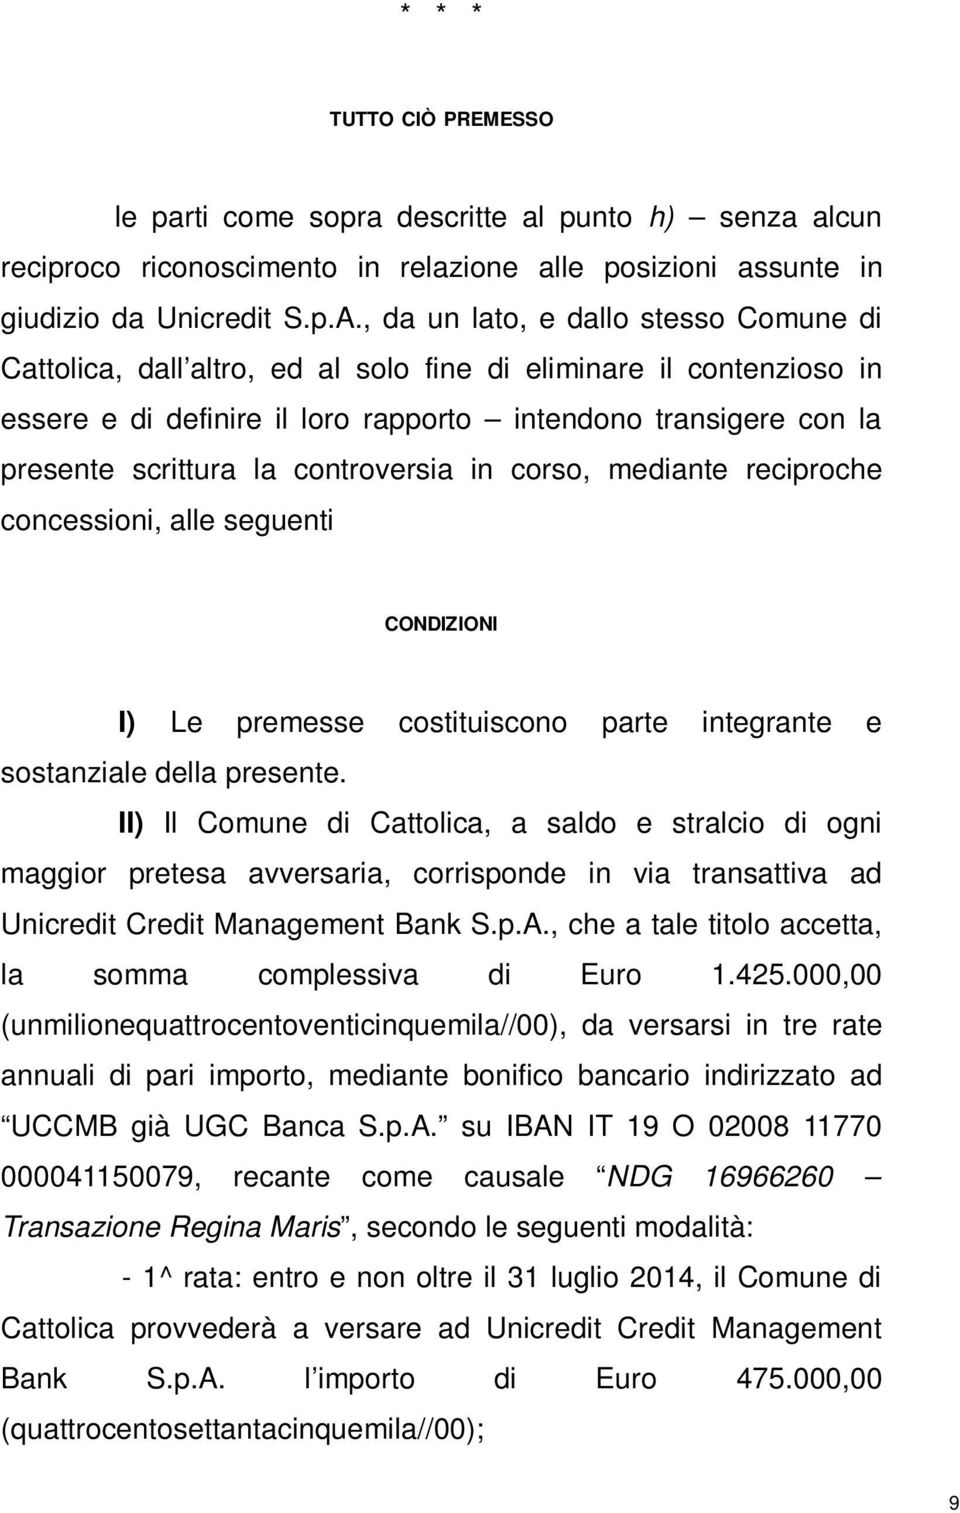 transazione unicredit credit management bank s.p.a - pdf